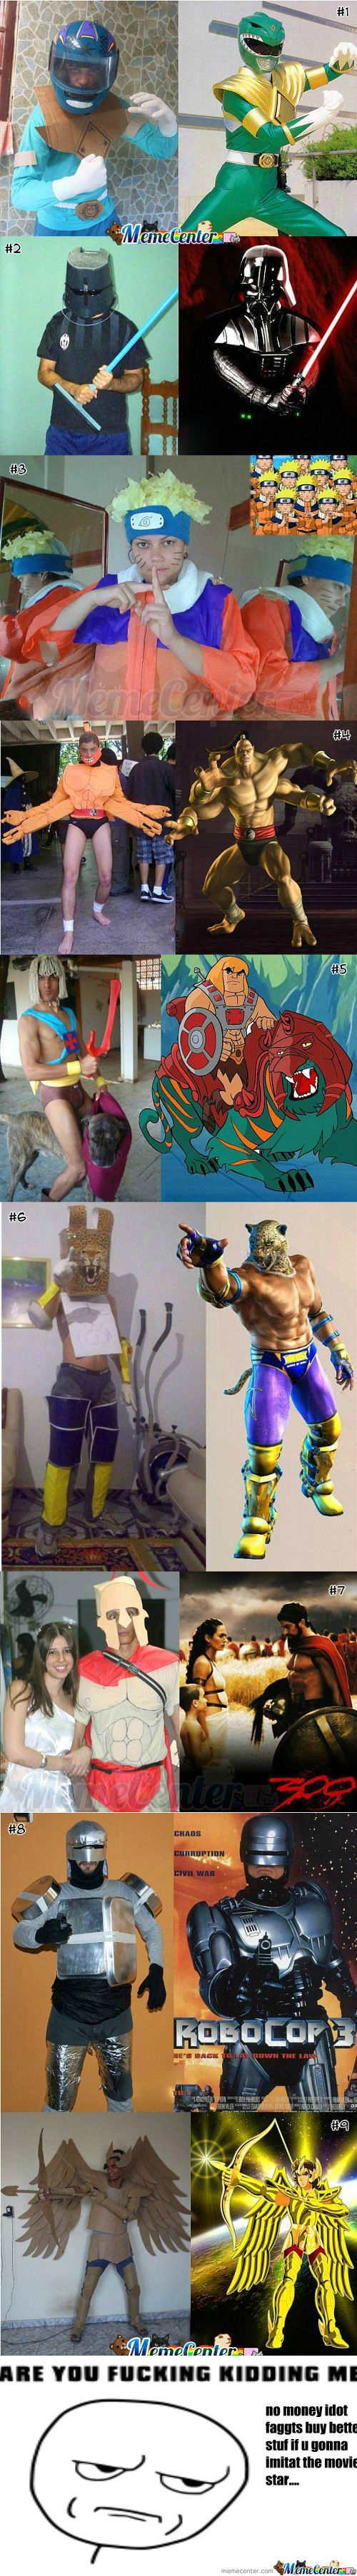 [RMX] Low Budget, Creative Cosplay : Part 1